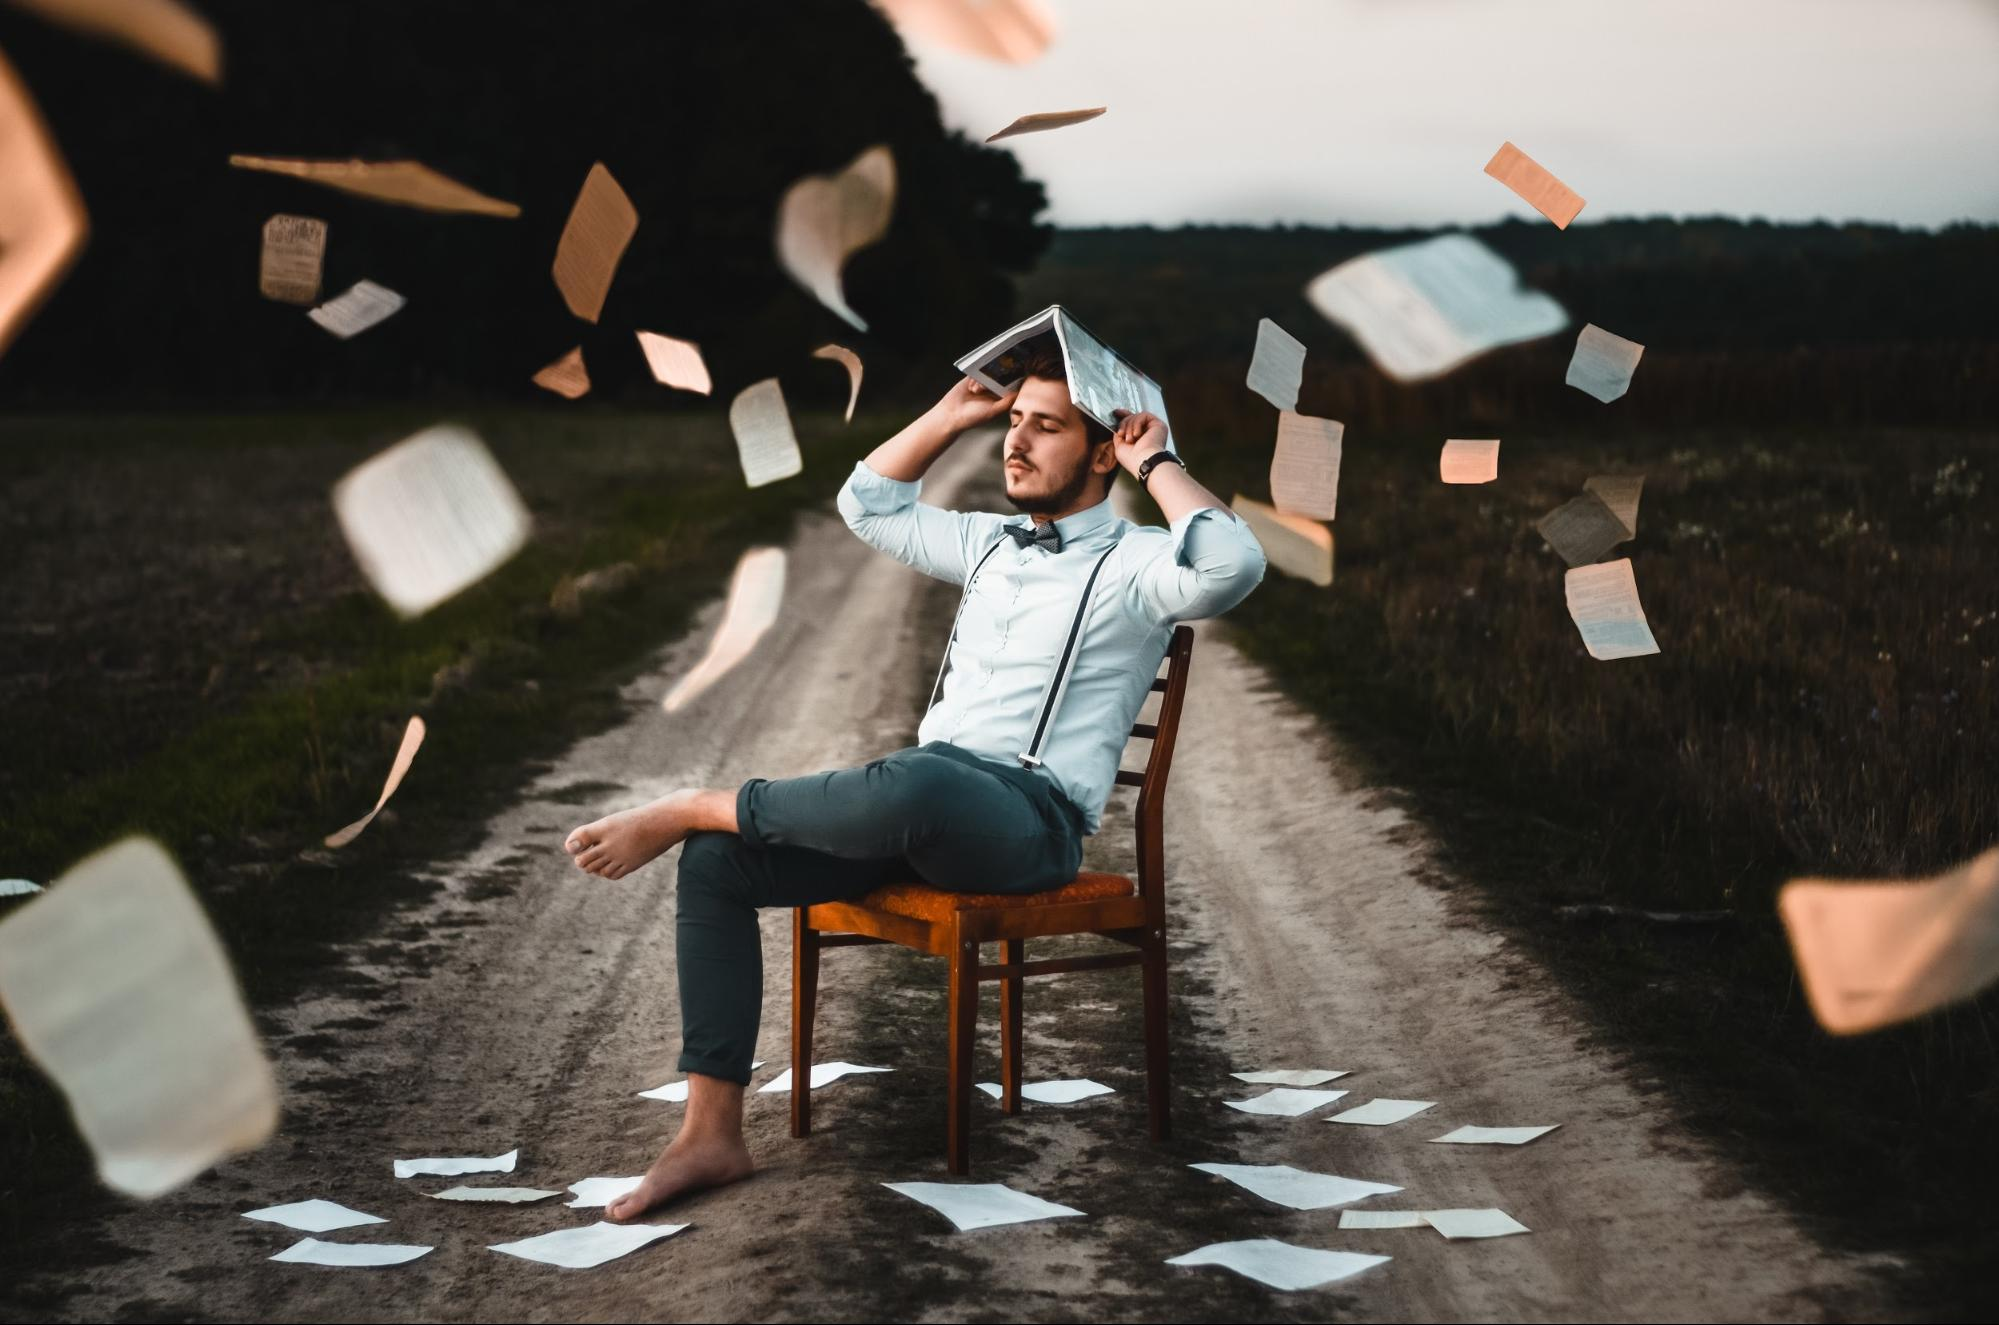 man in chair with papers flying around